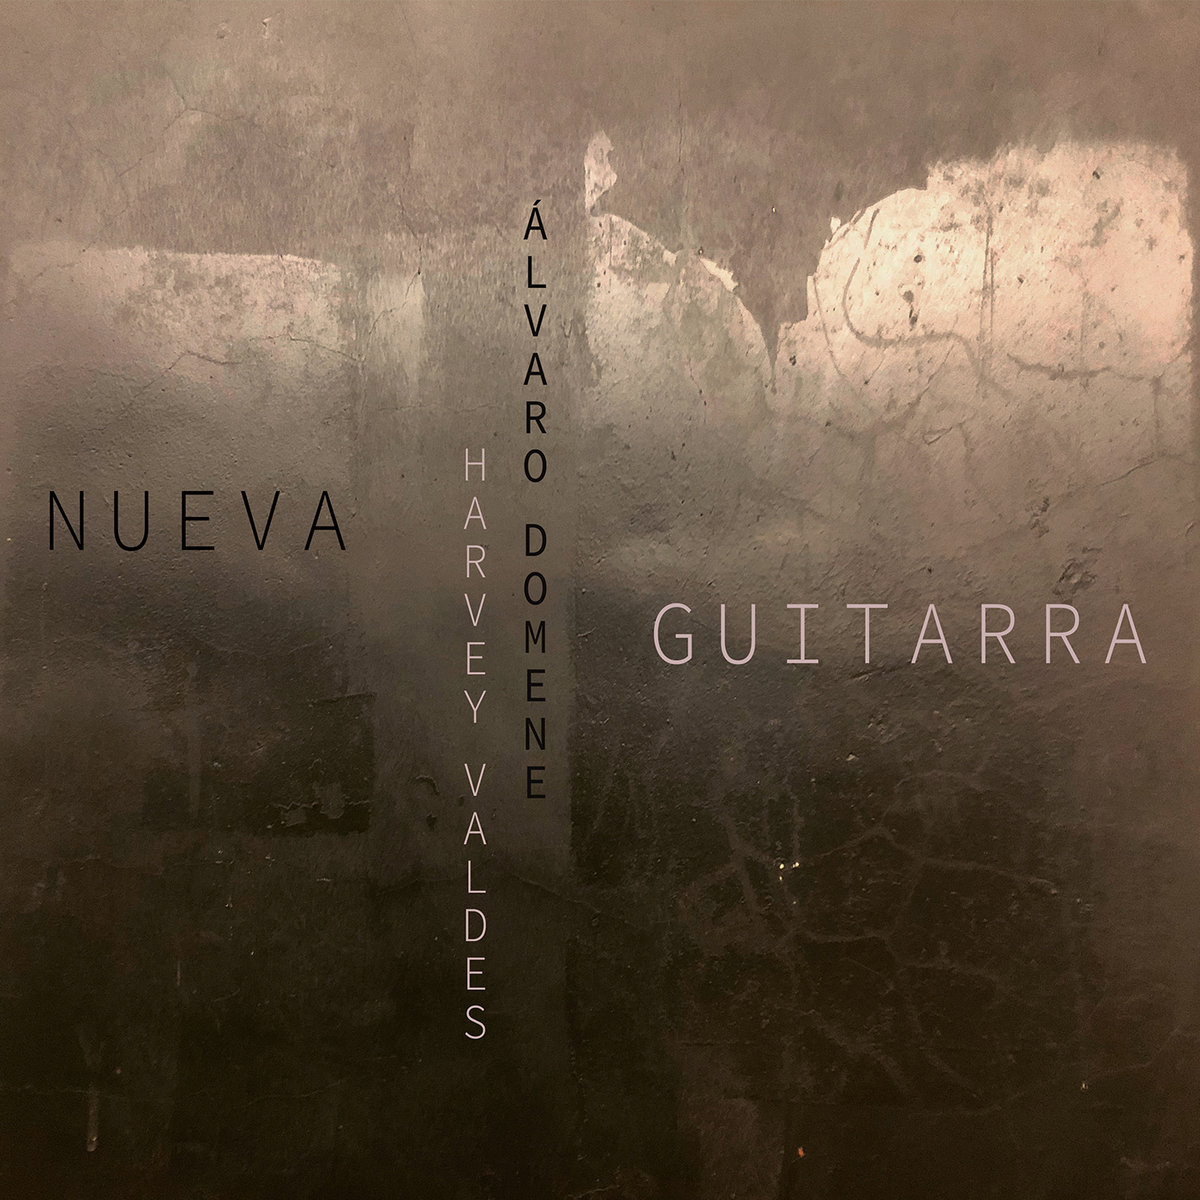 Nueva Guitarra by Harvey Valdes & Álvaro Domene